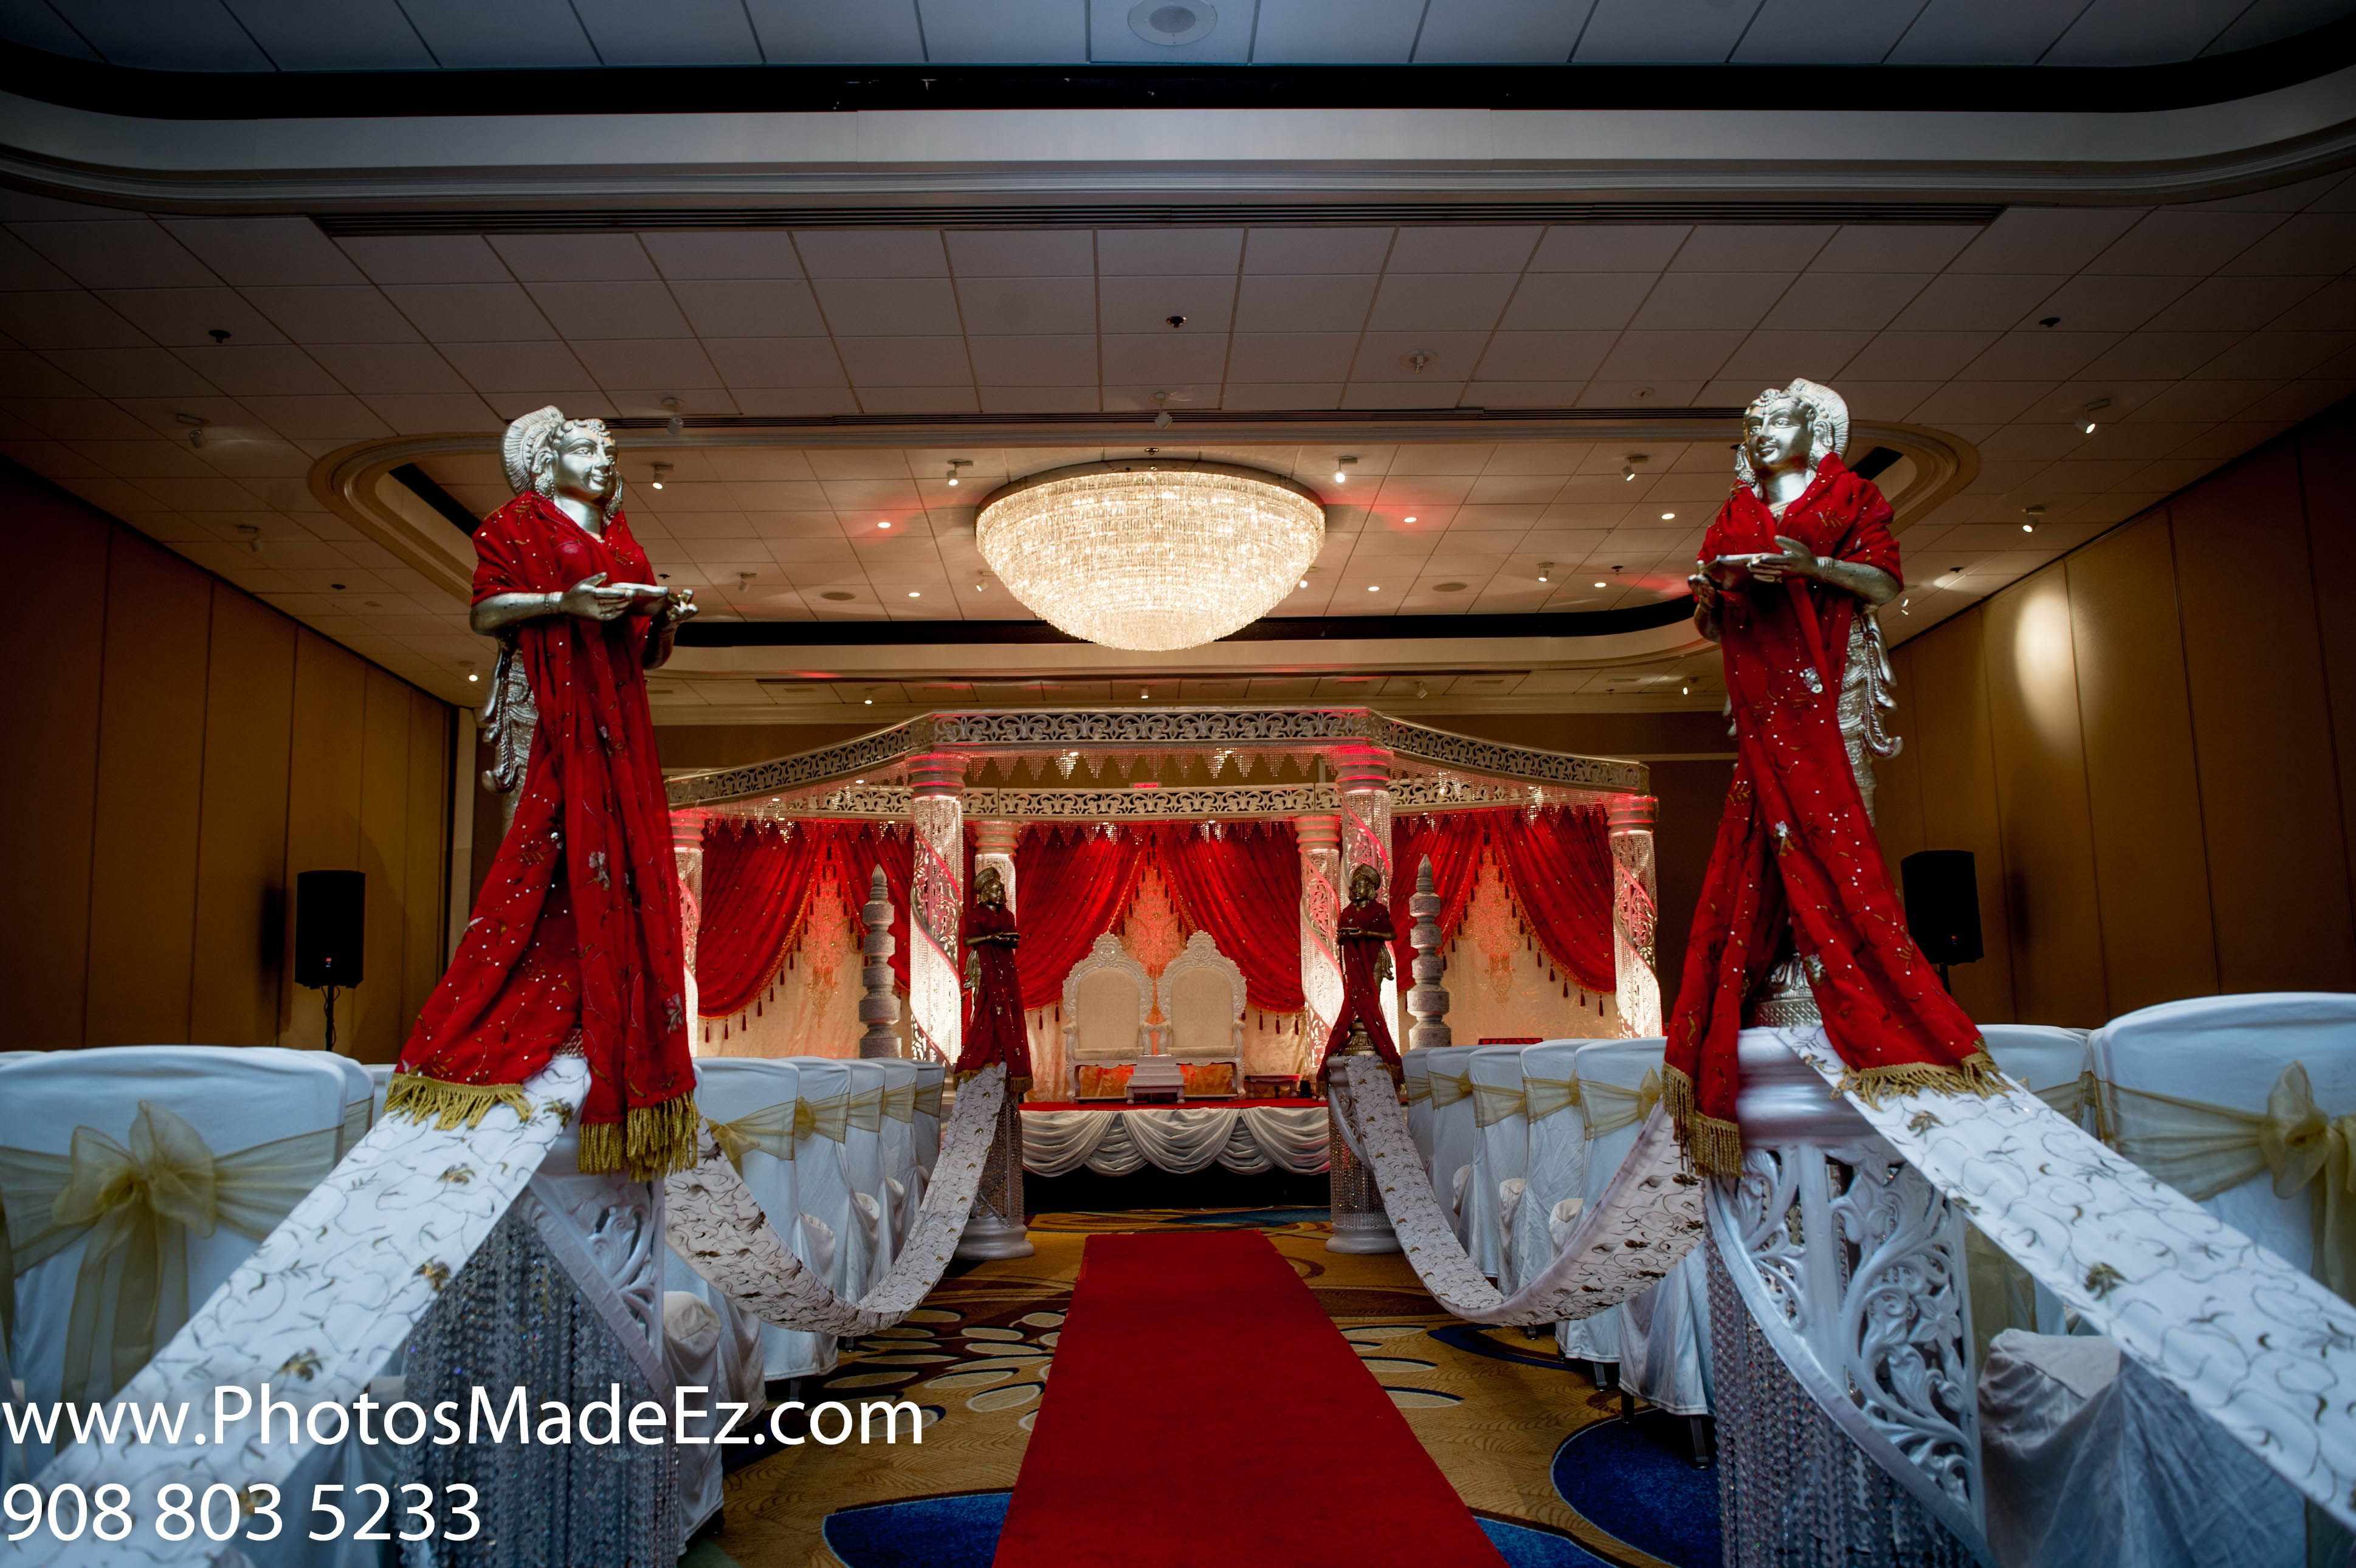 Mandap For Ceremony In Indian Wedding In Marriott Teaneck Nj With